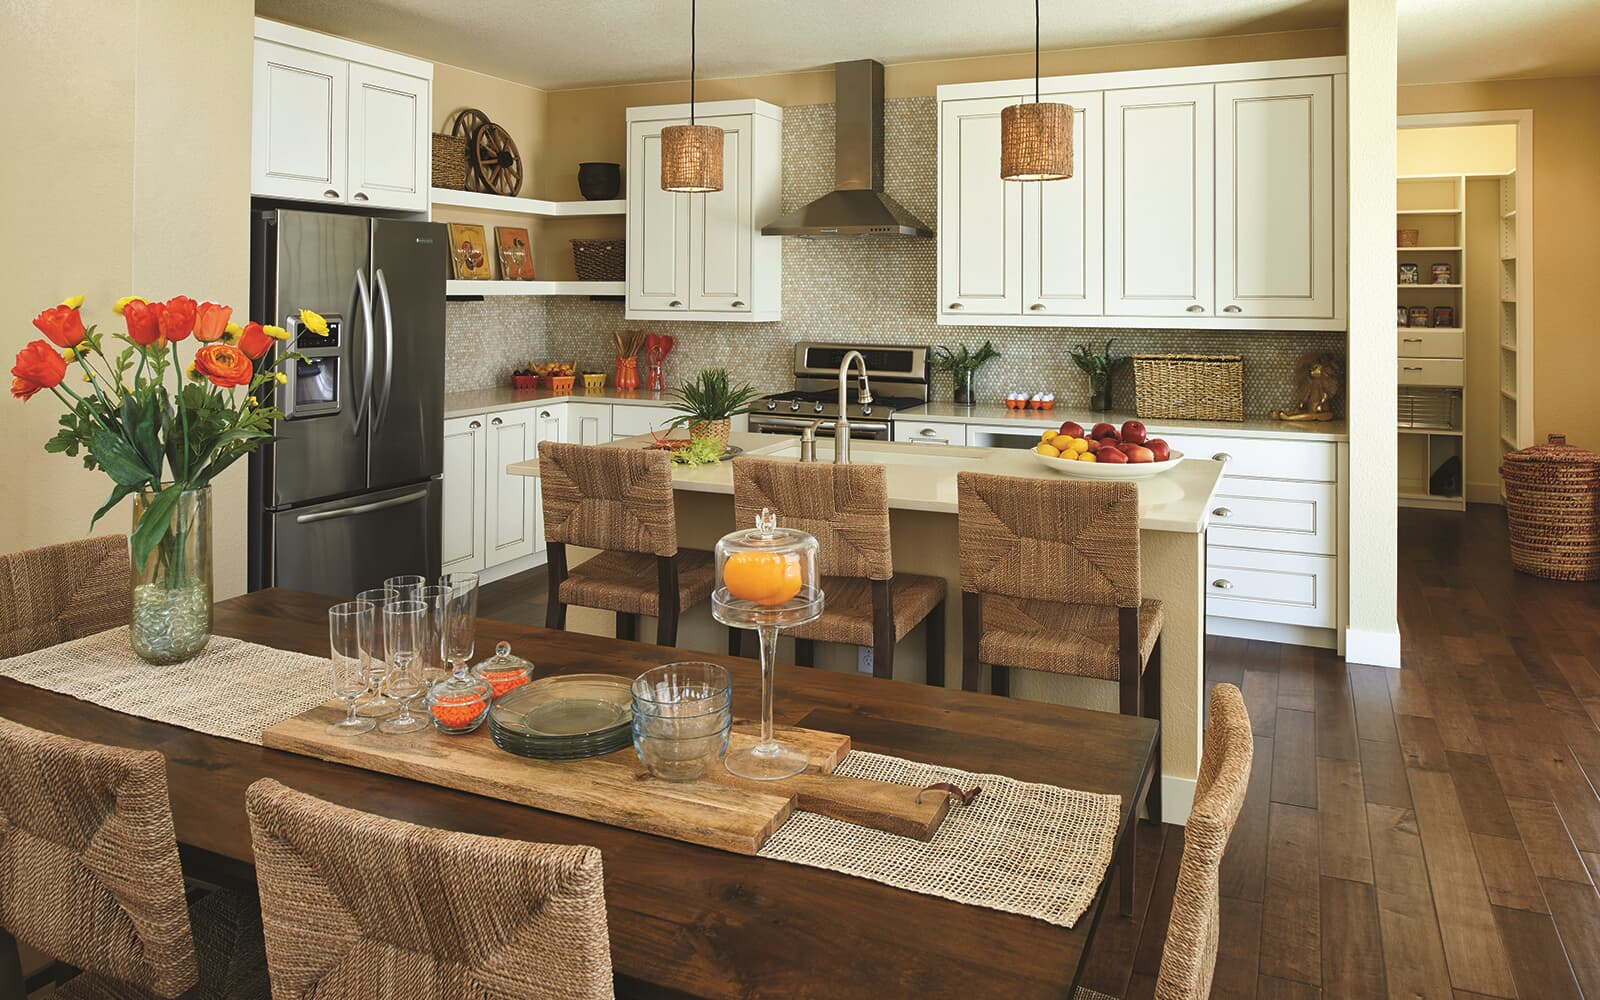 Freestyle-Six-Model-Interior-Kitchen-Brighton-Crossings-Denver-Colorado